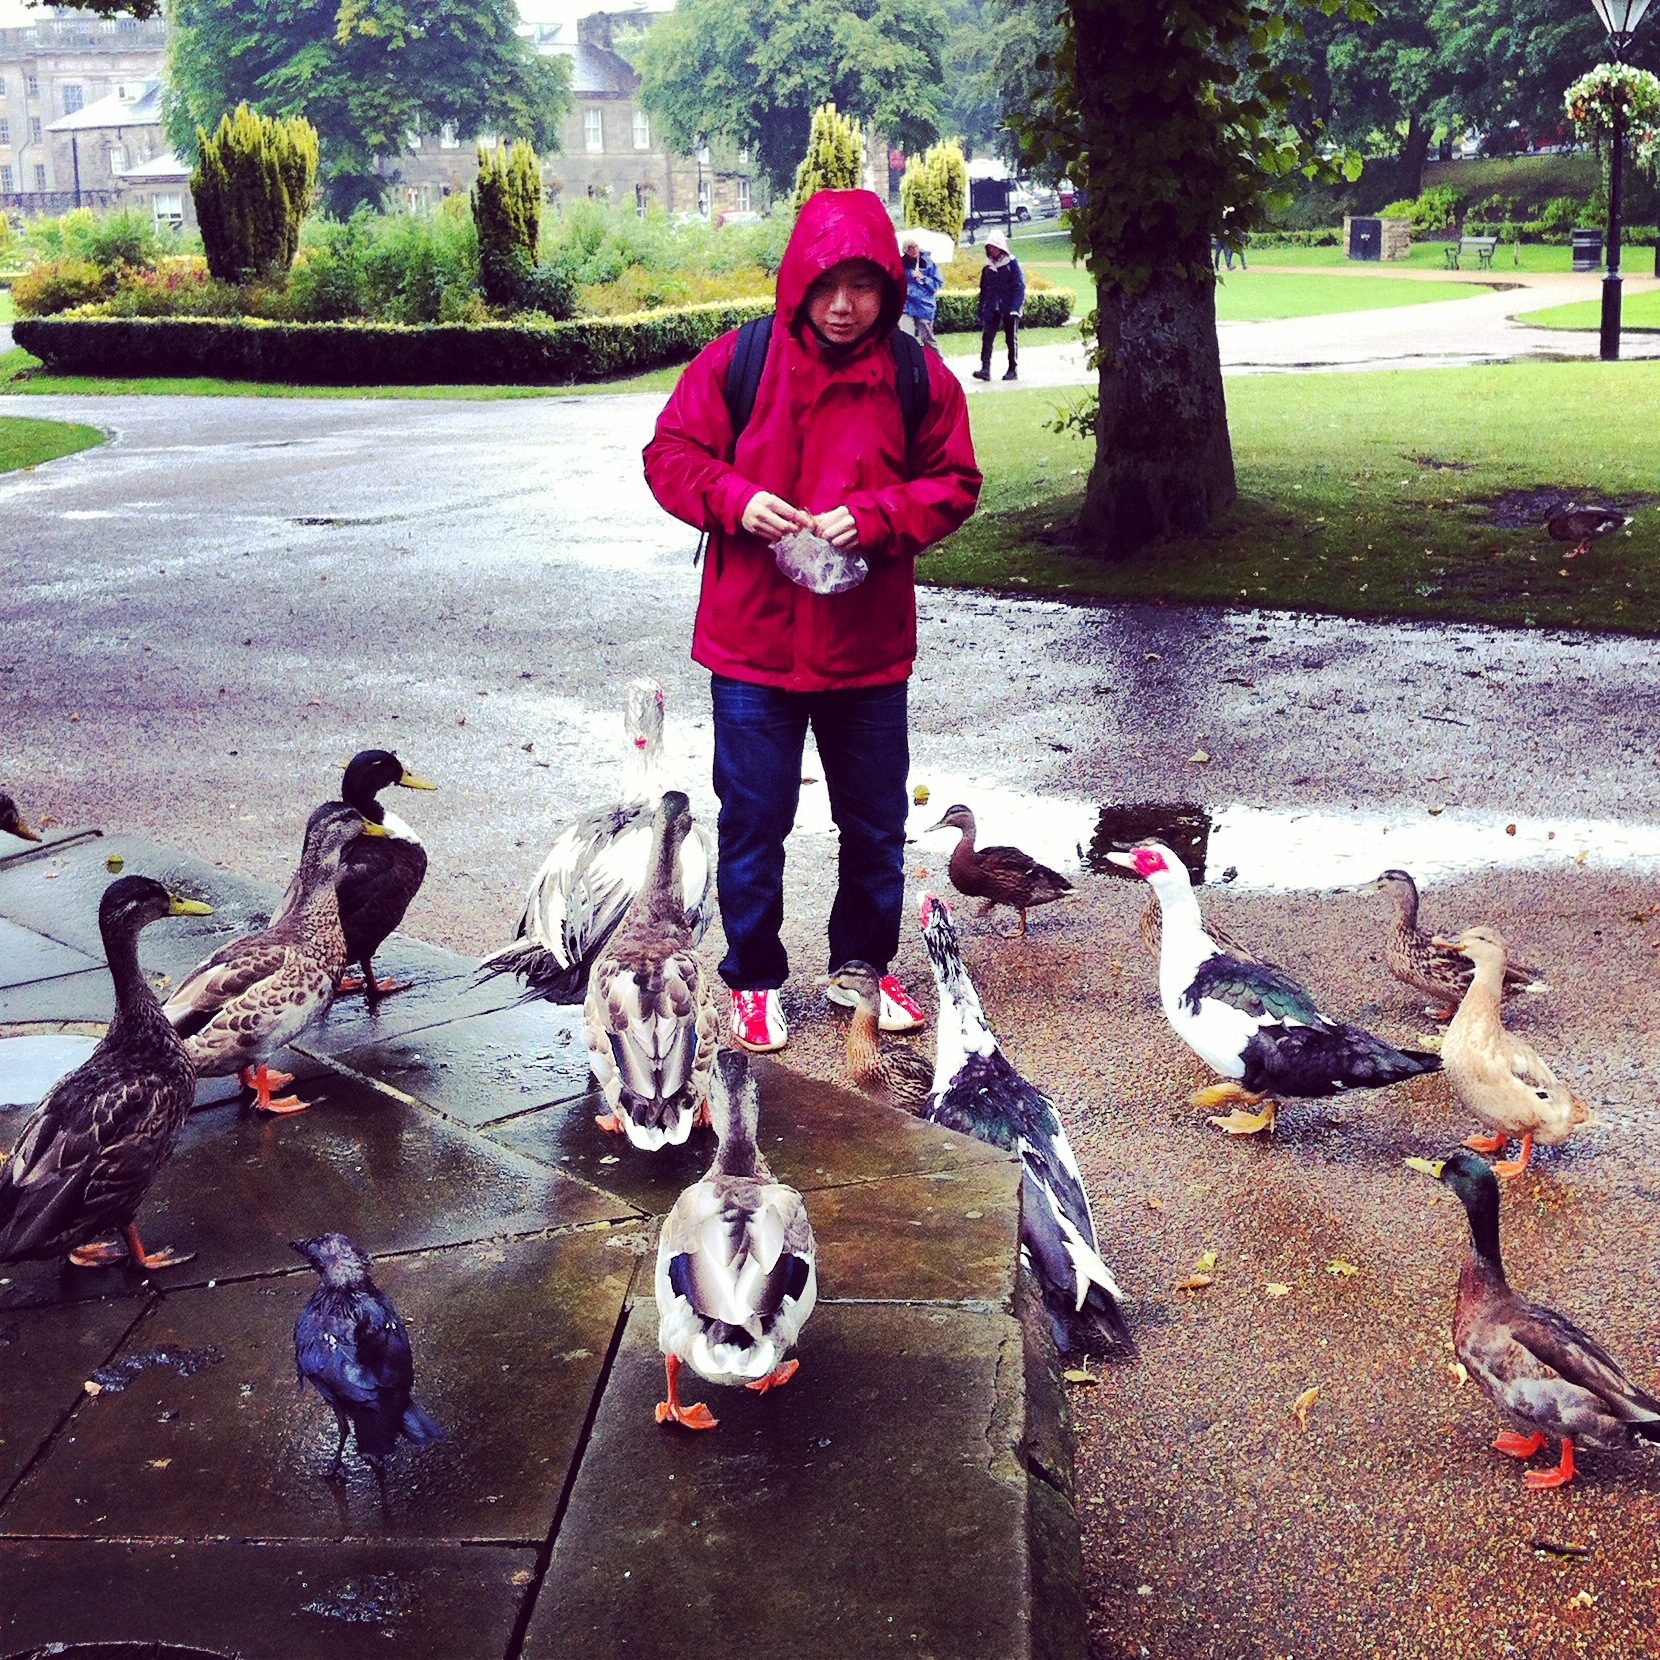 Yasu and the Ducks